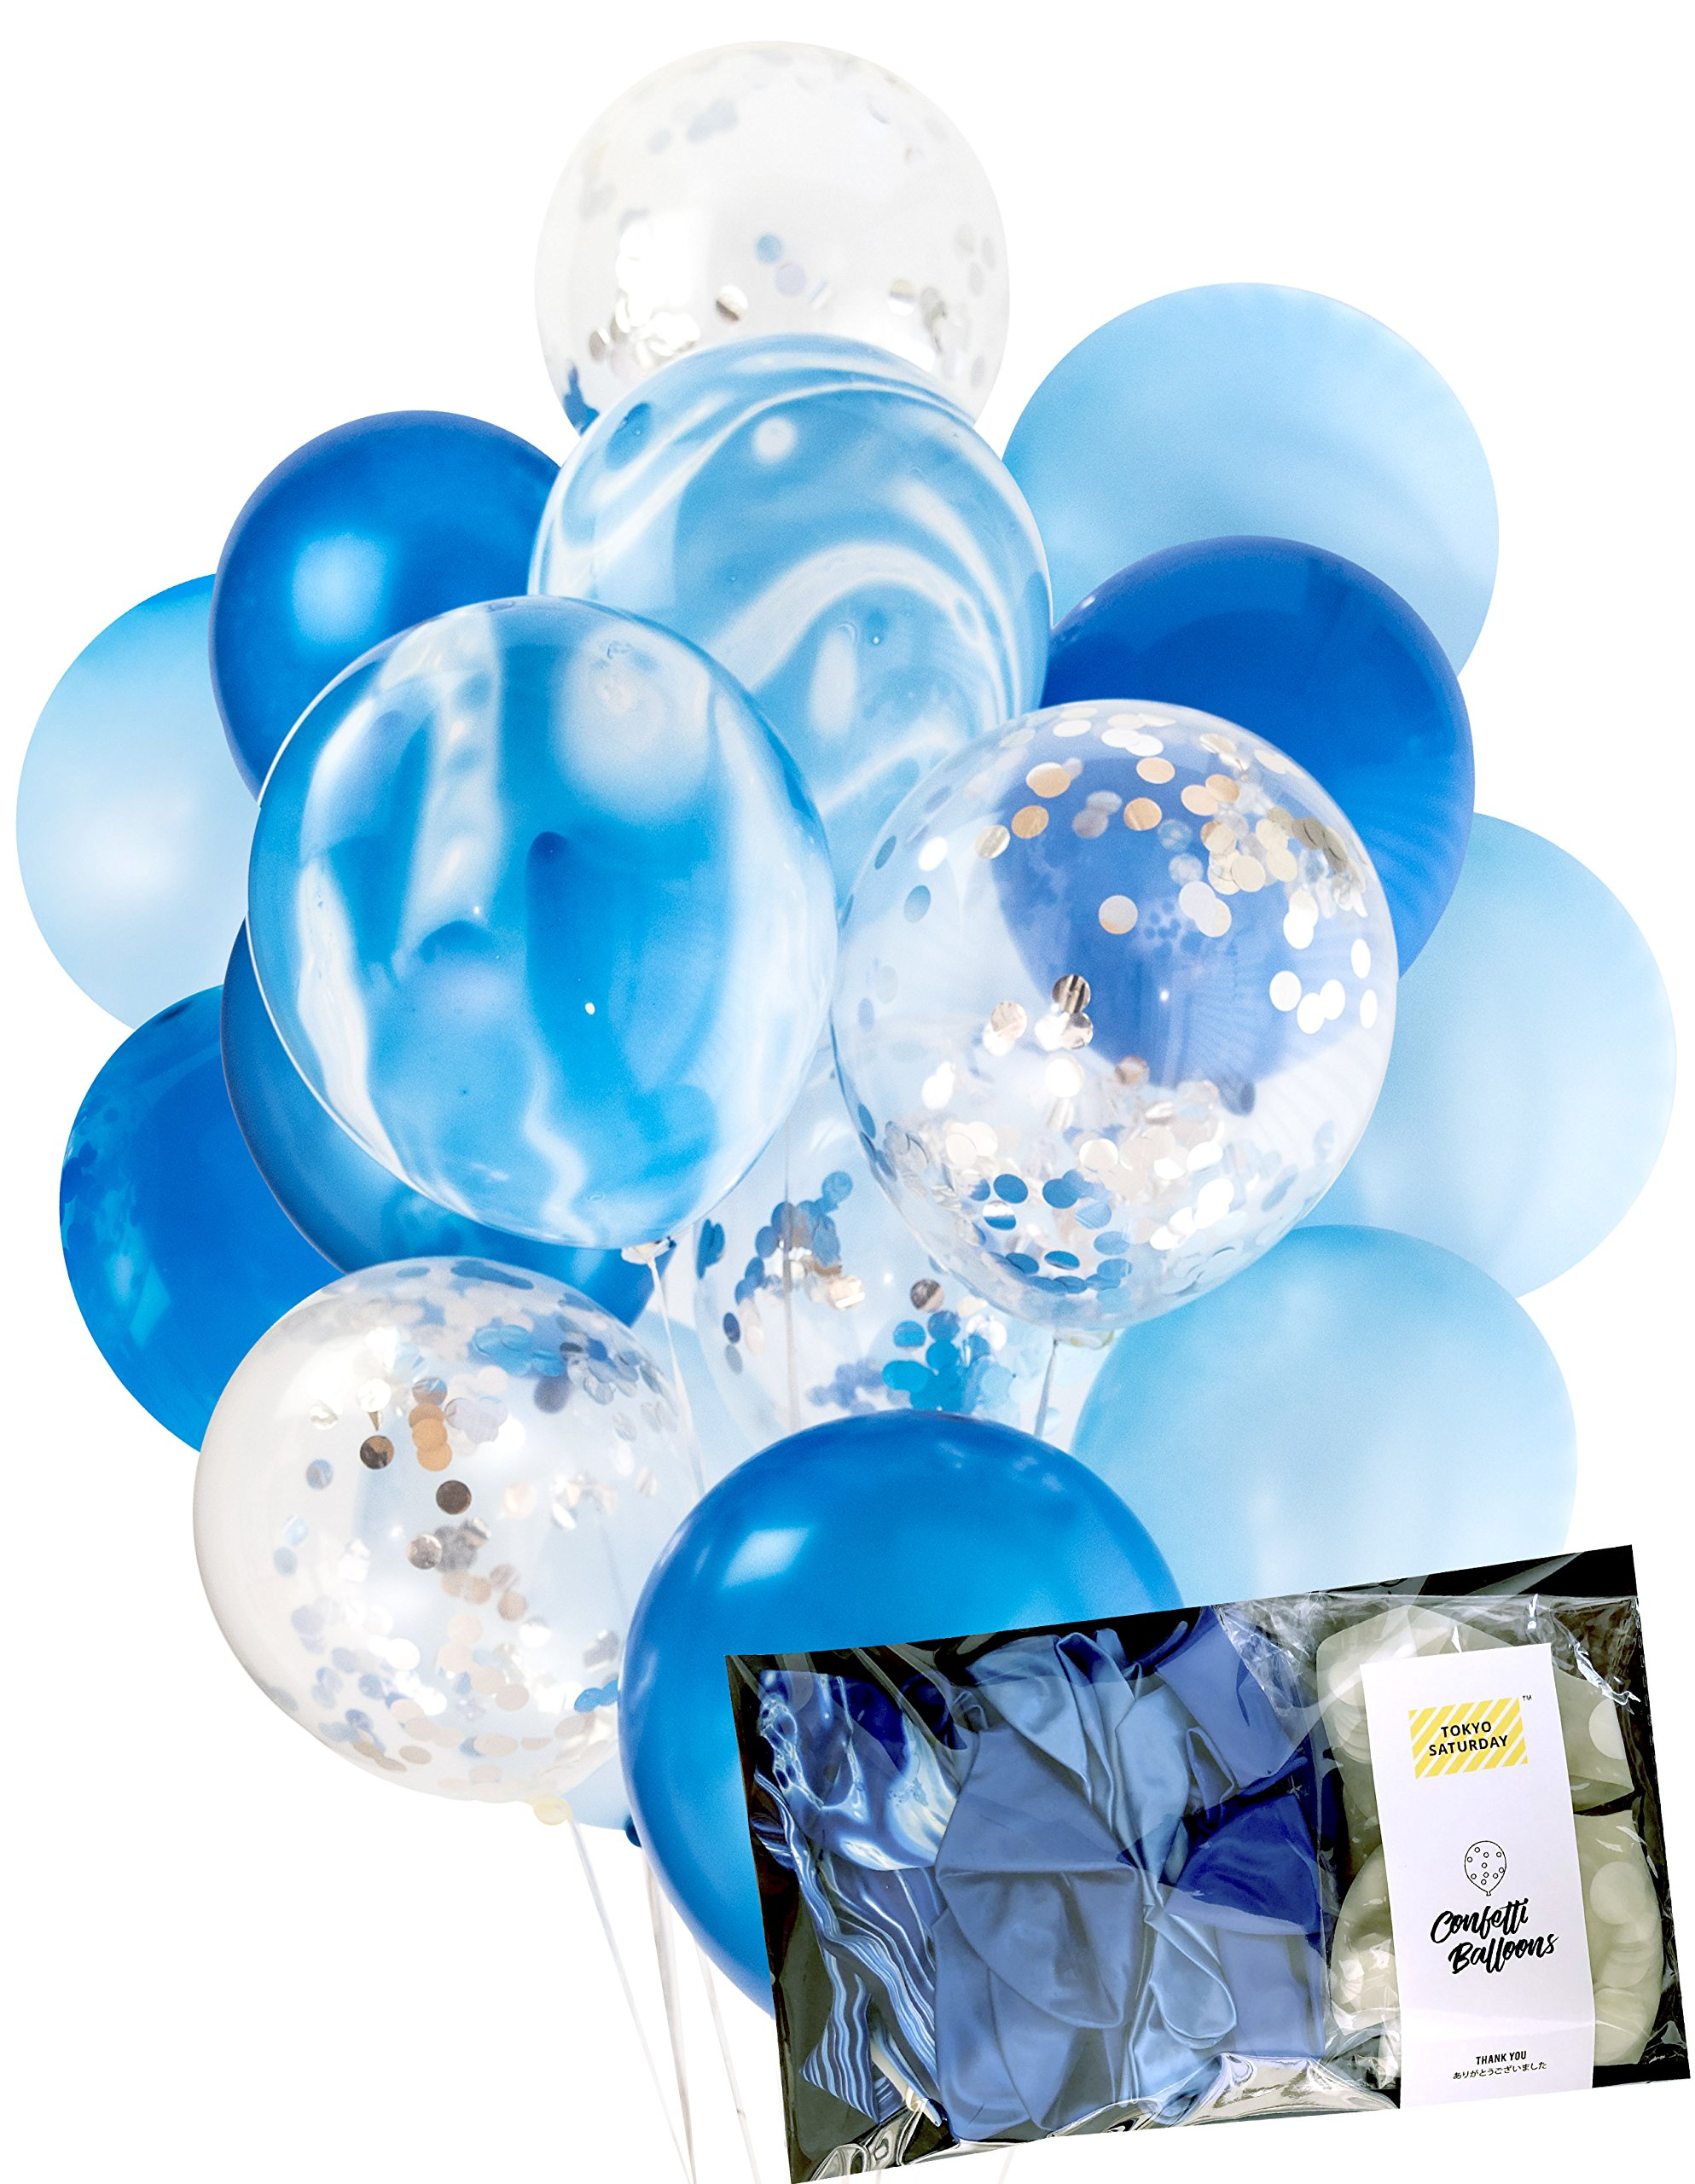 Modern Blue and Silver Party Decoration Marble Confetti Balloons (Thickened 12'' 20pcs, Ready To Inflate) for Wedding Party, Birthday Party, Photobooth, Backdrop, Arch (Blue Marble) - by TOKYO SATURDAY